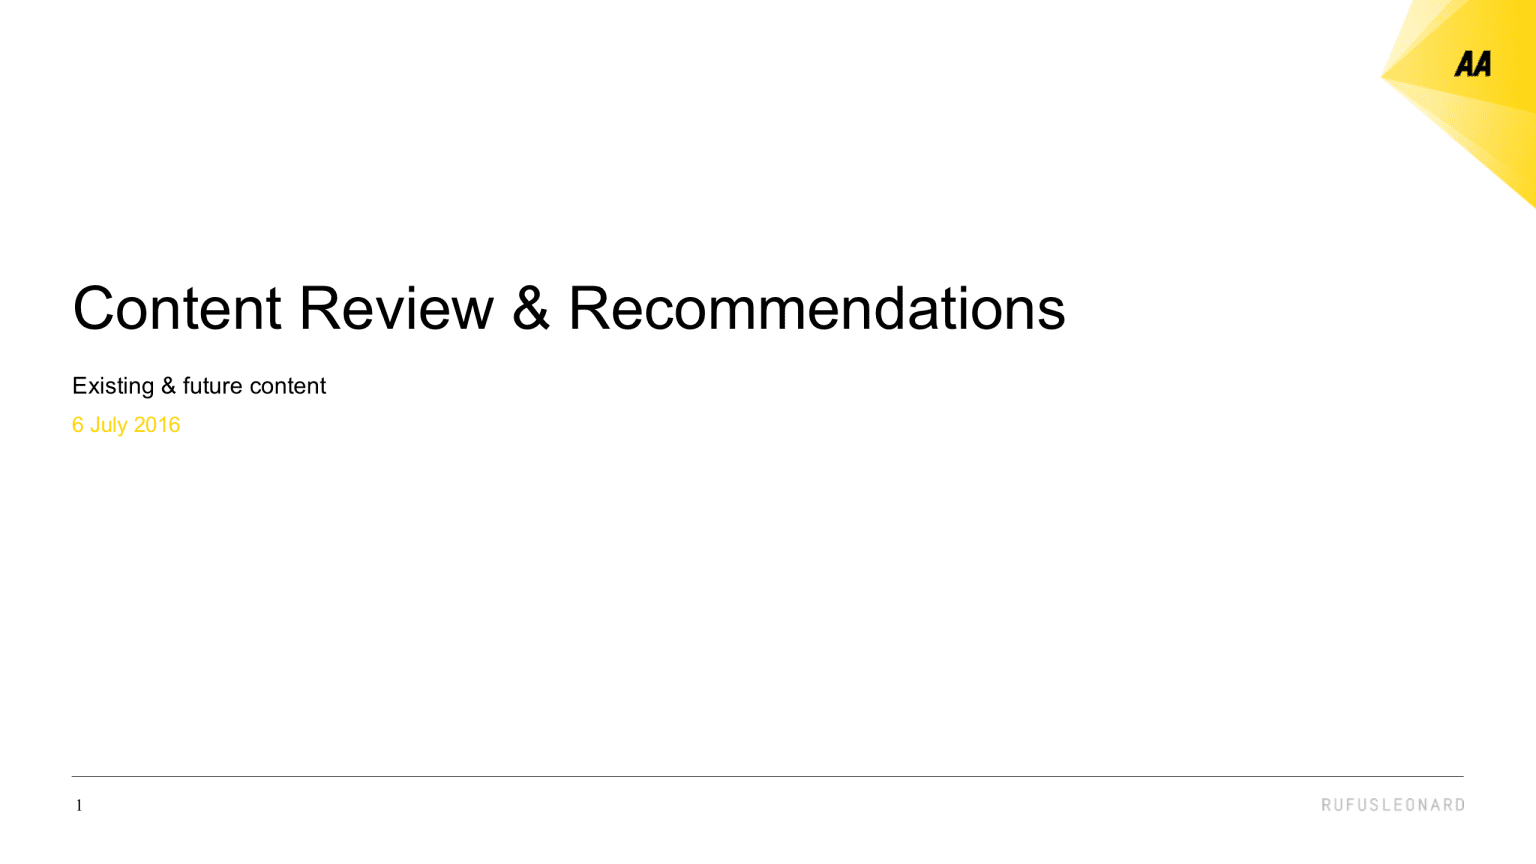 New World Content and Review Recommendations